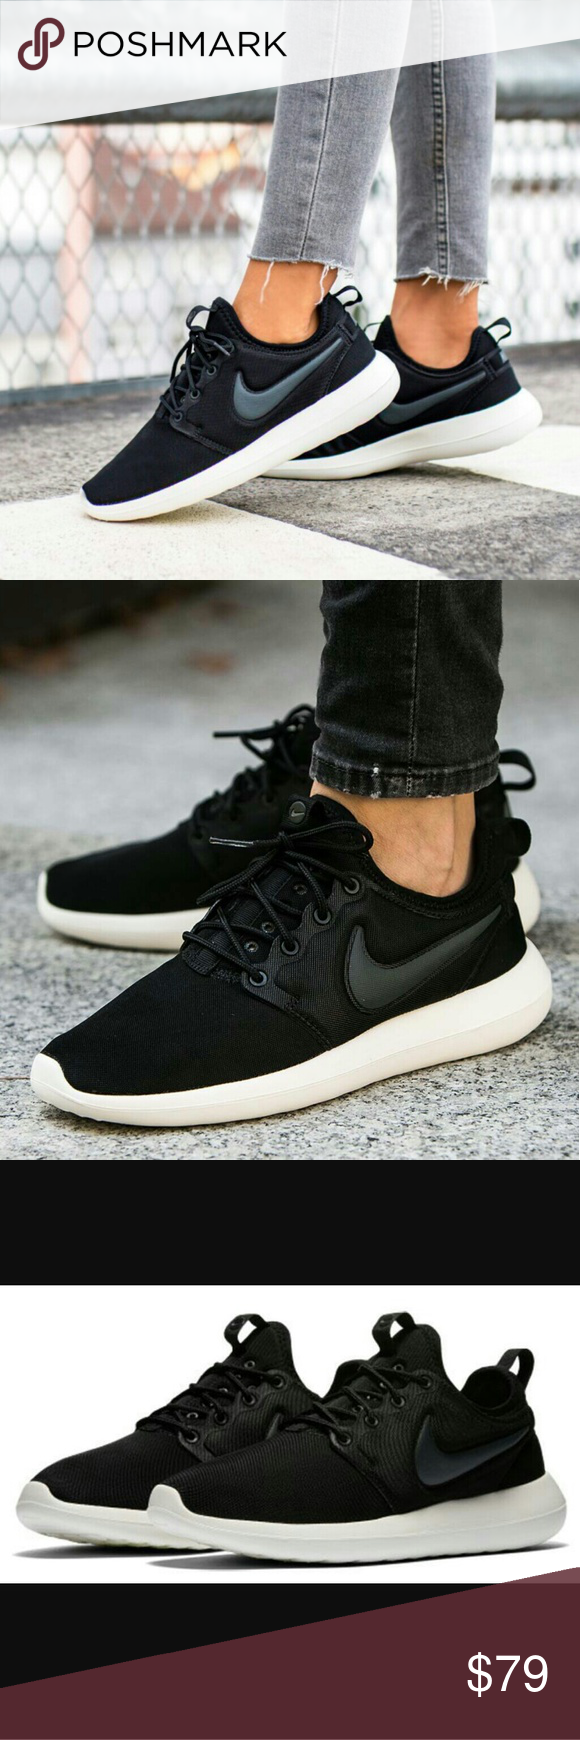 low priced 25f58 c6bc1 NWT Nike Roshe Two Black White Shoe - New in Box! - Great ...